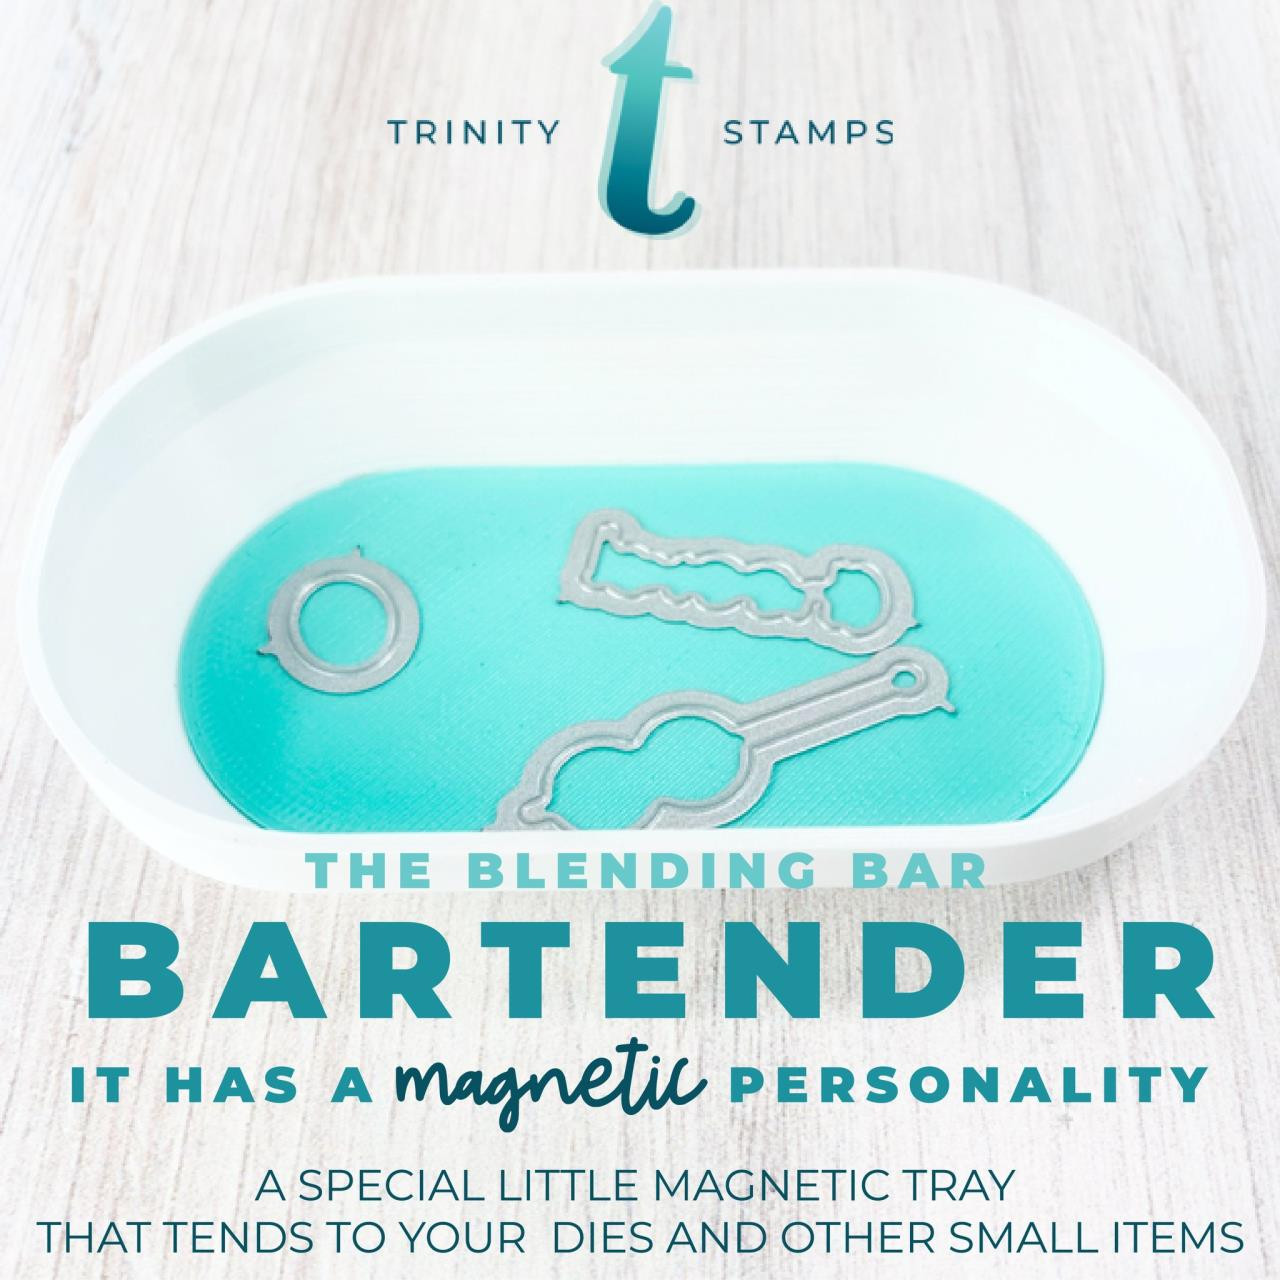 Bartender Magnetic Tray, Trinity Stamps -